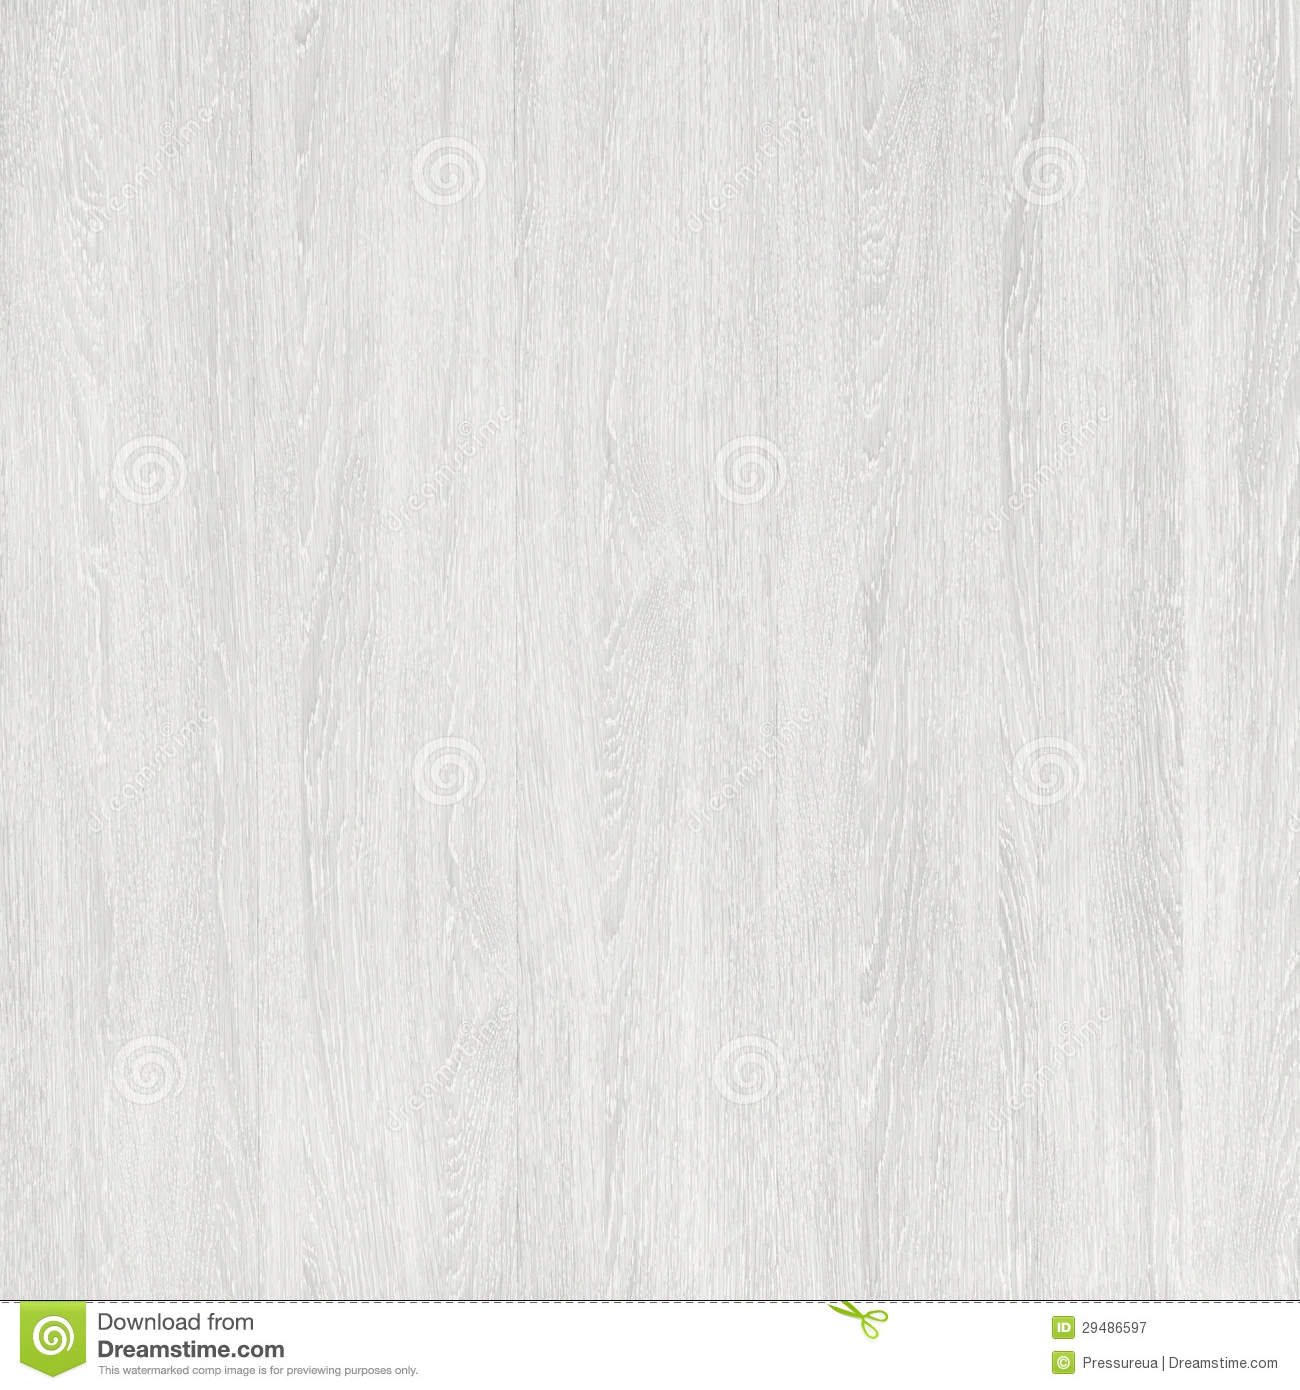 Seamless Loft White Parquet Texture Royalty Free Stock